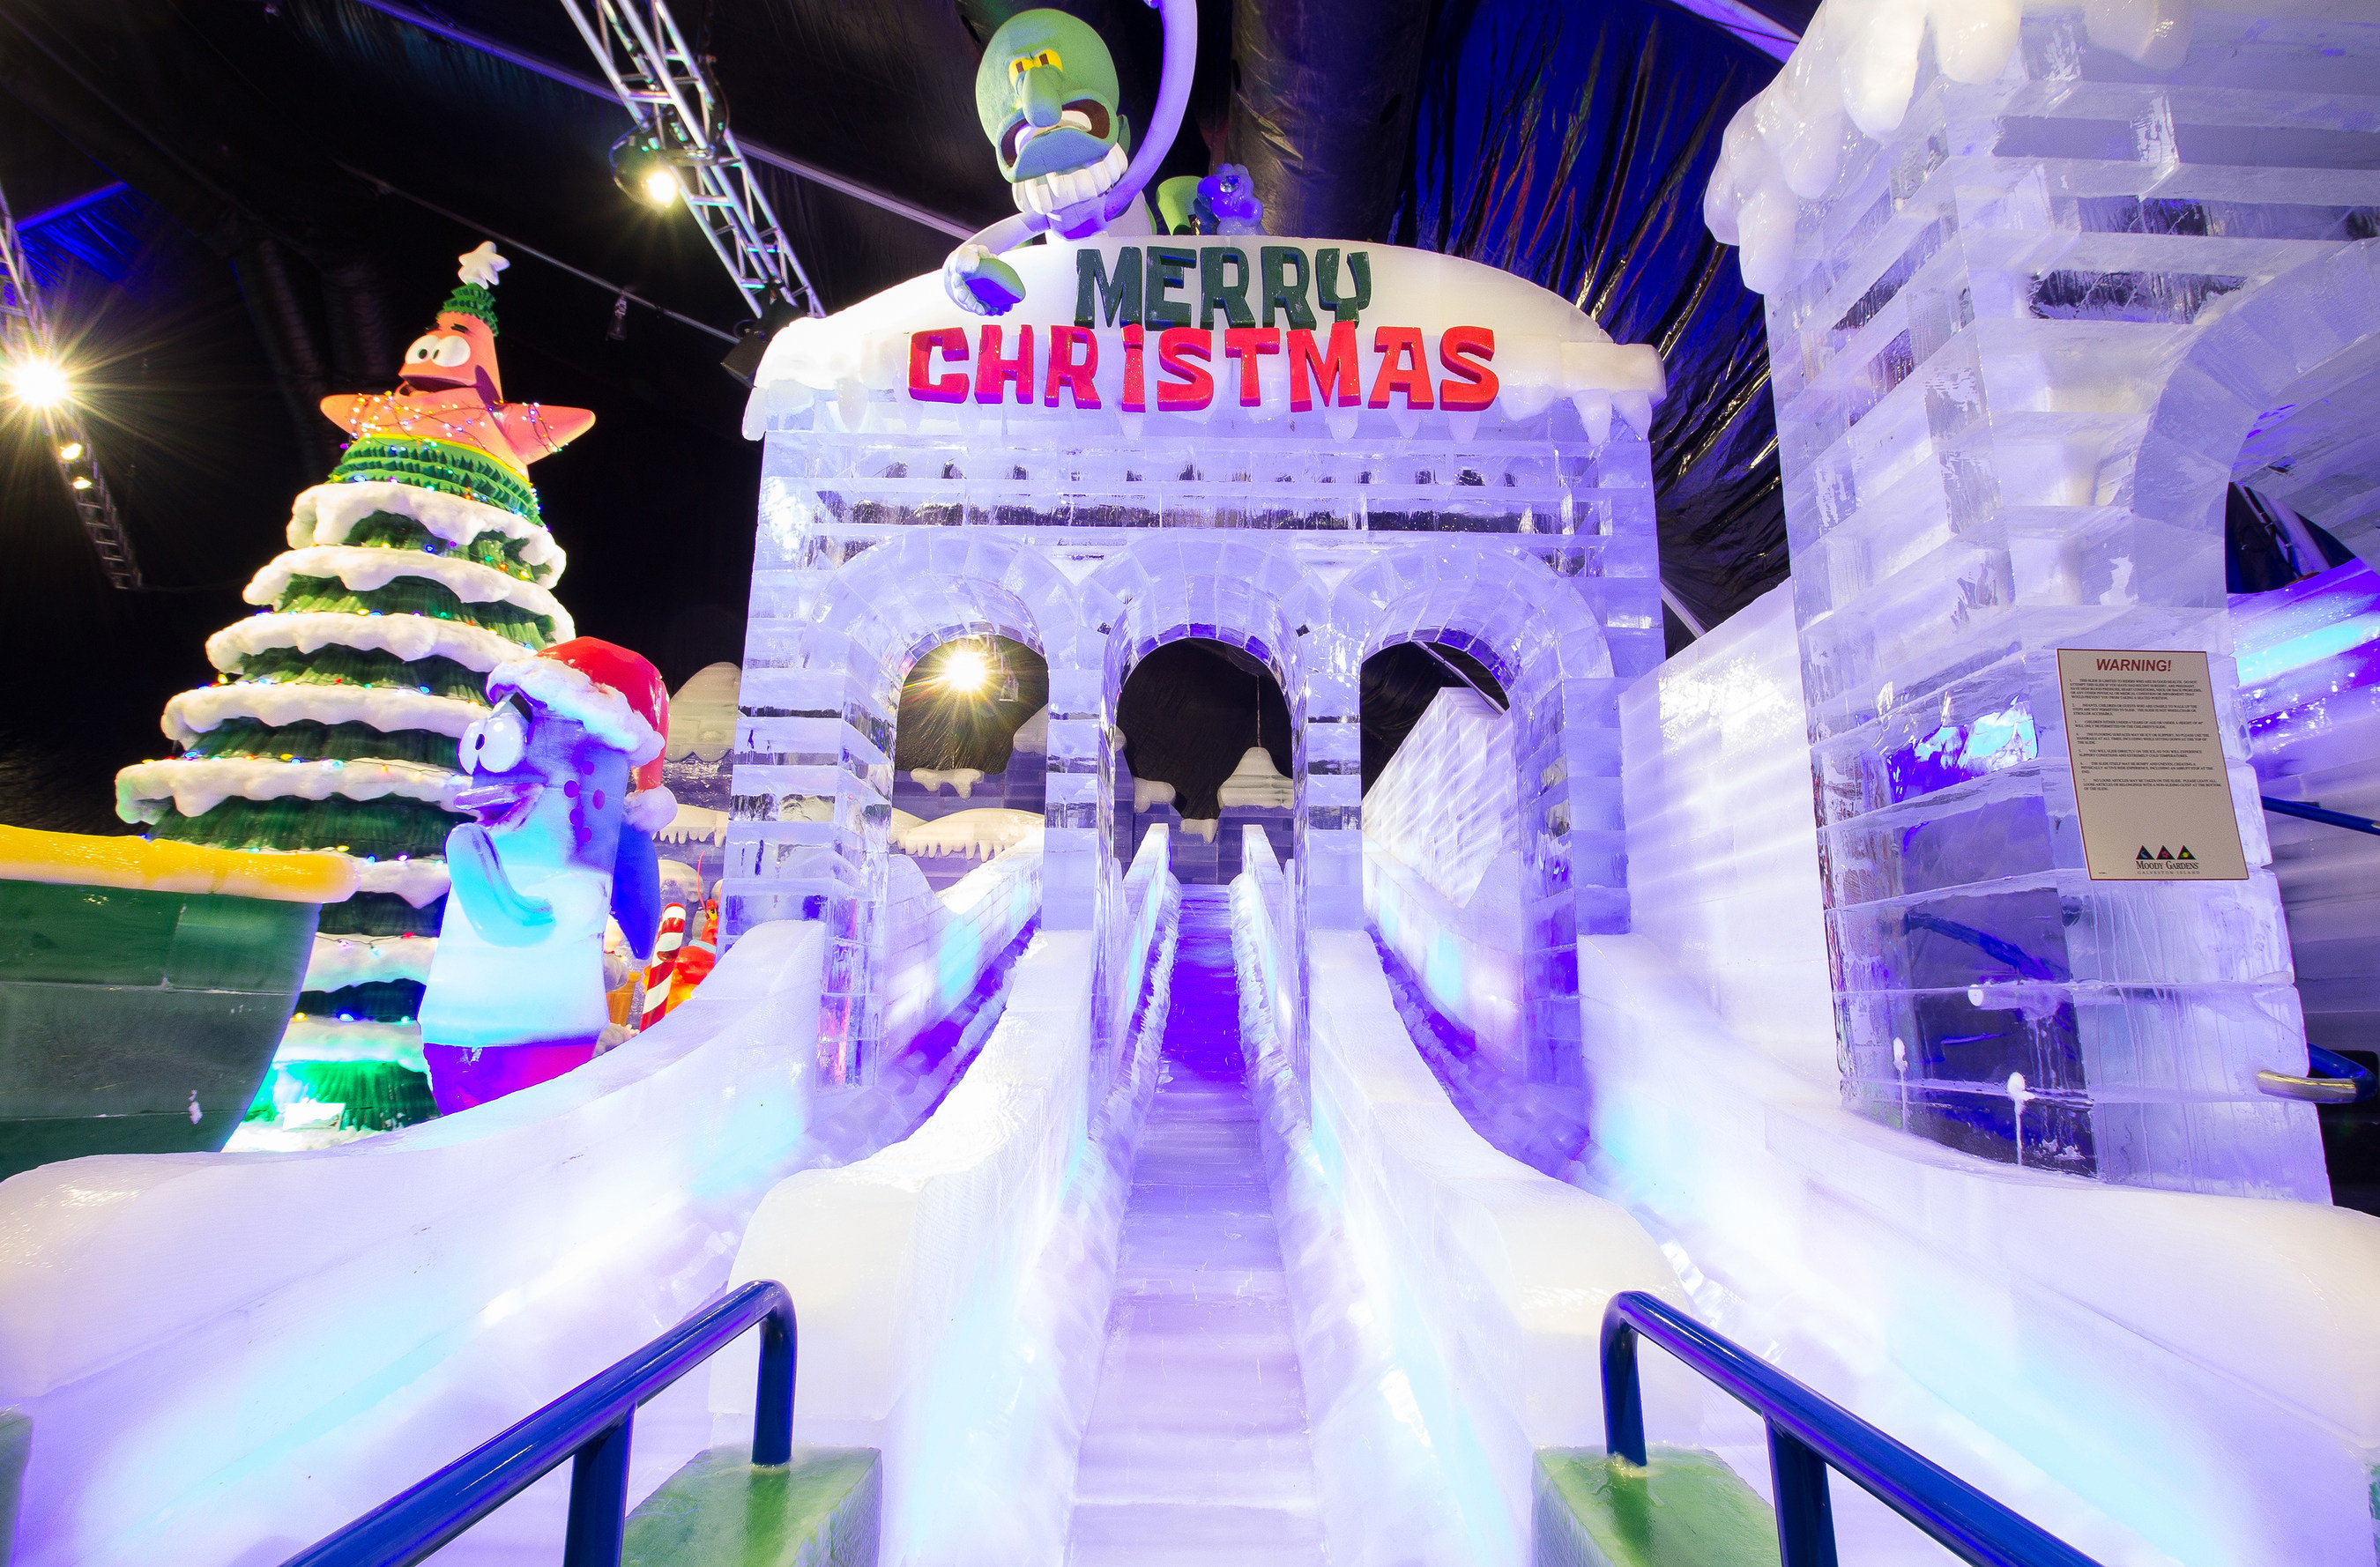 The Ice Slide Is A Crowd Favorite At Moody Gardens ICE LAND: Ice Sculptures  With